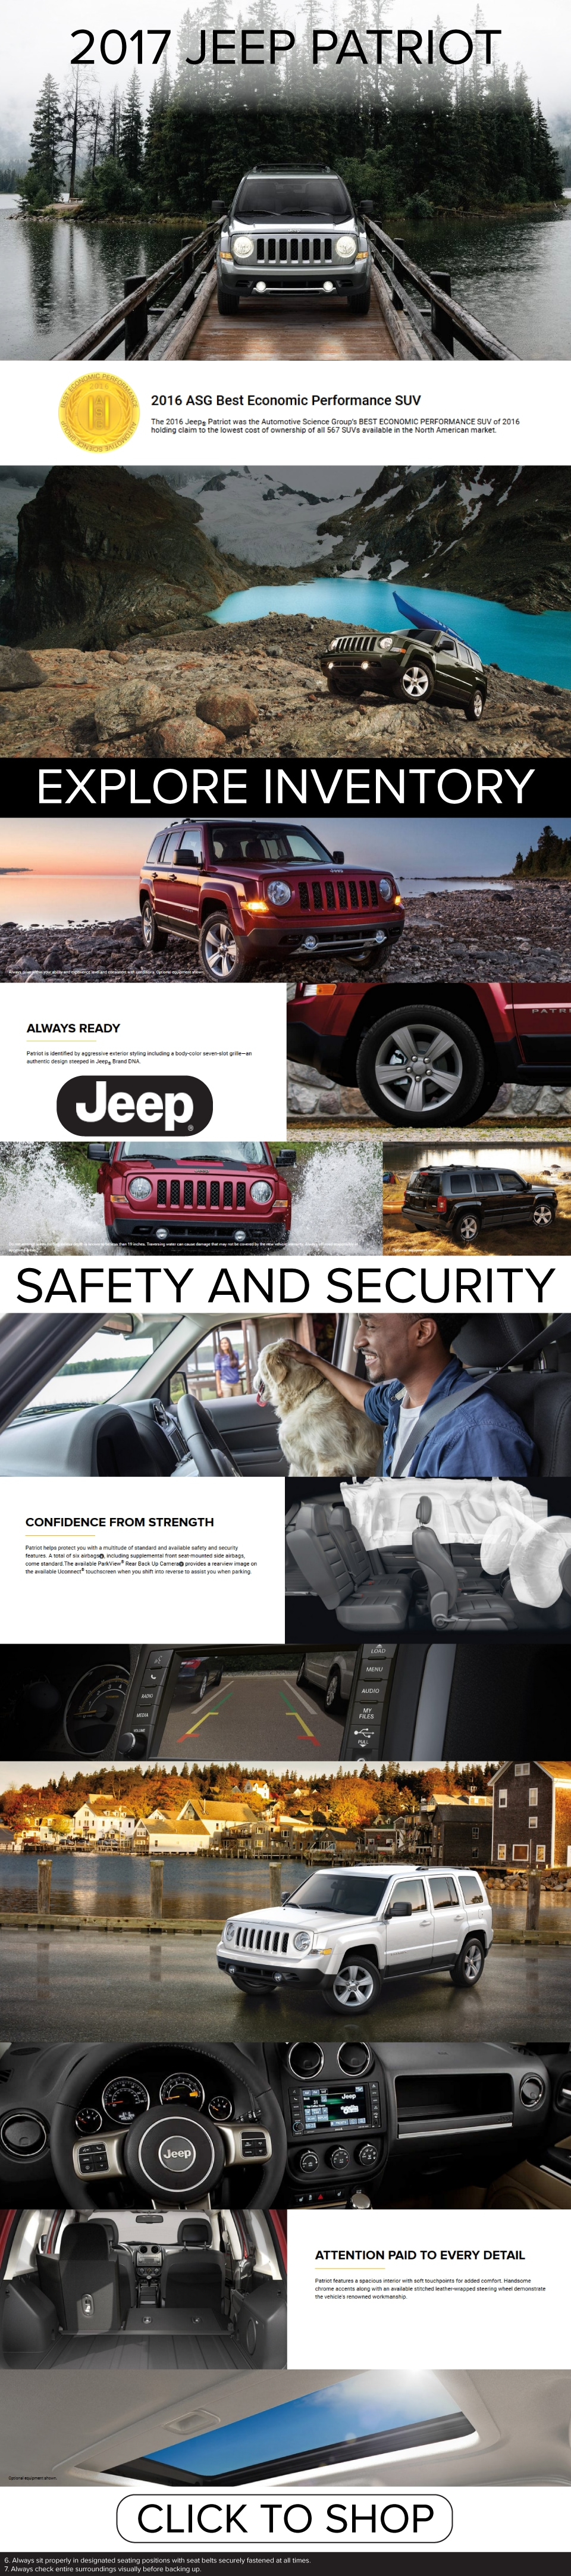 Test Drive the 2017 Jeep Patriot at Performance CJDR Columbus